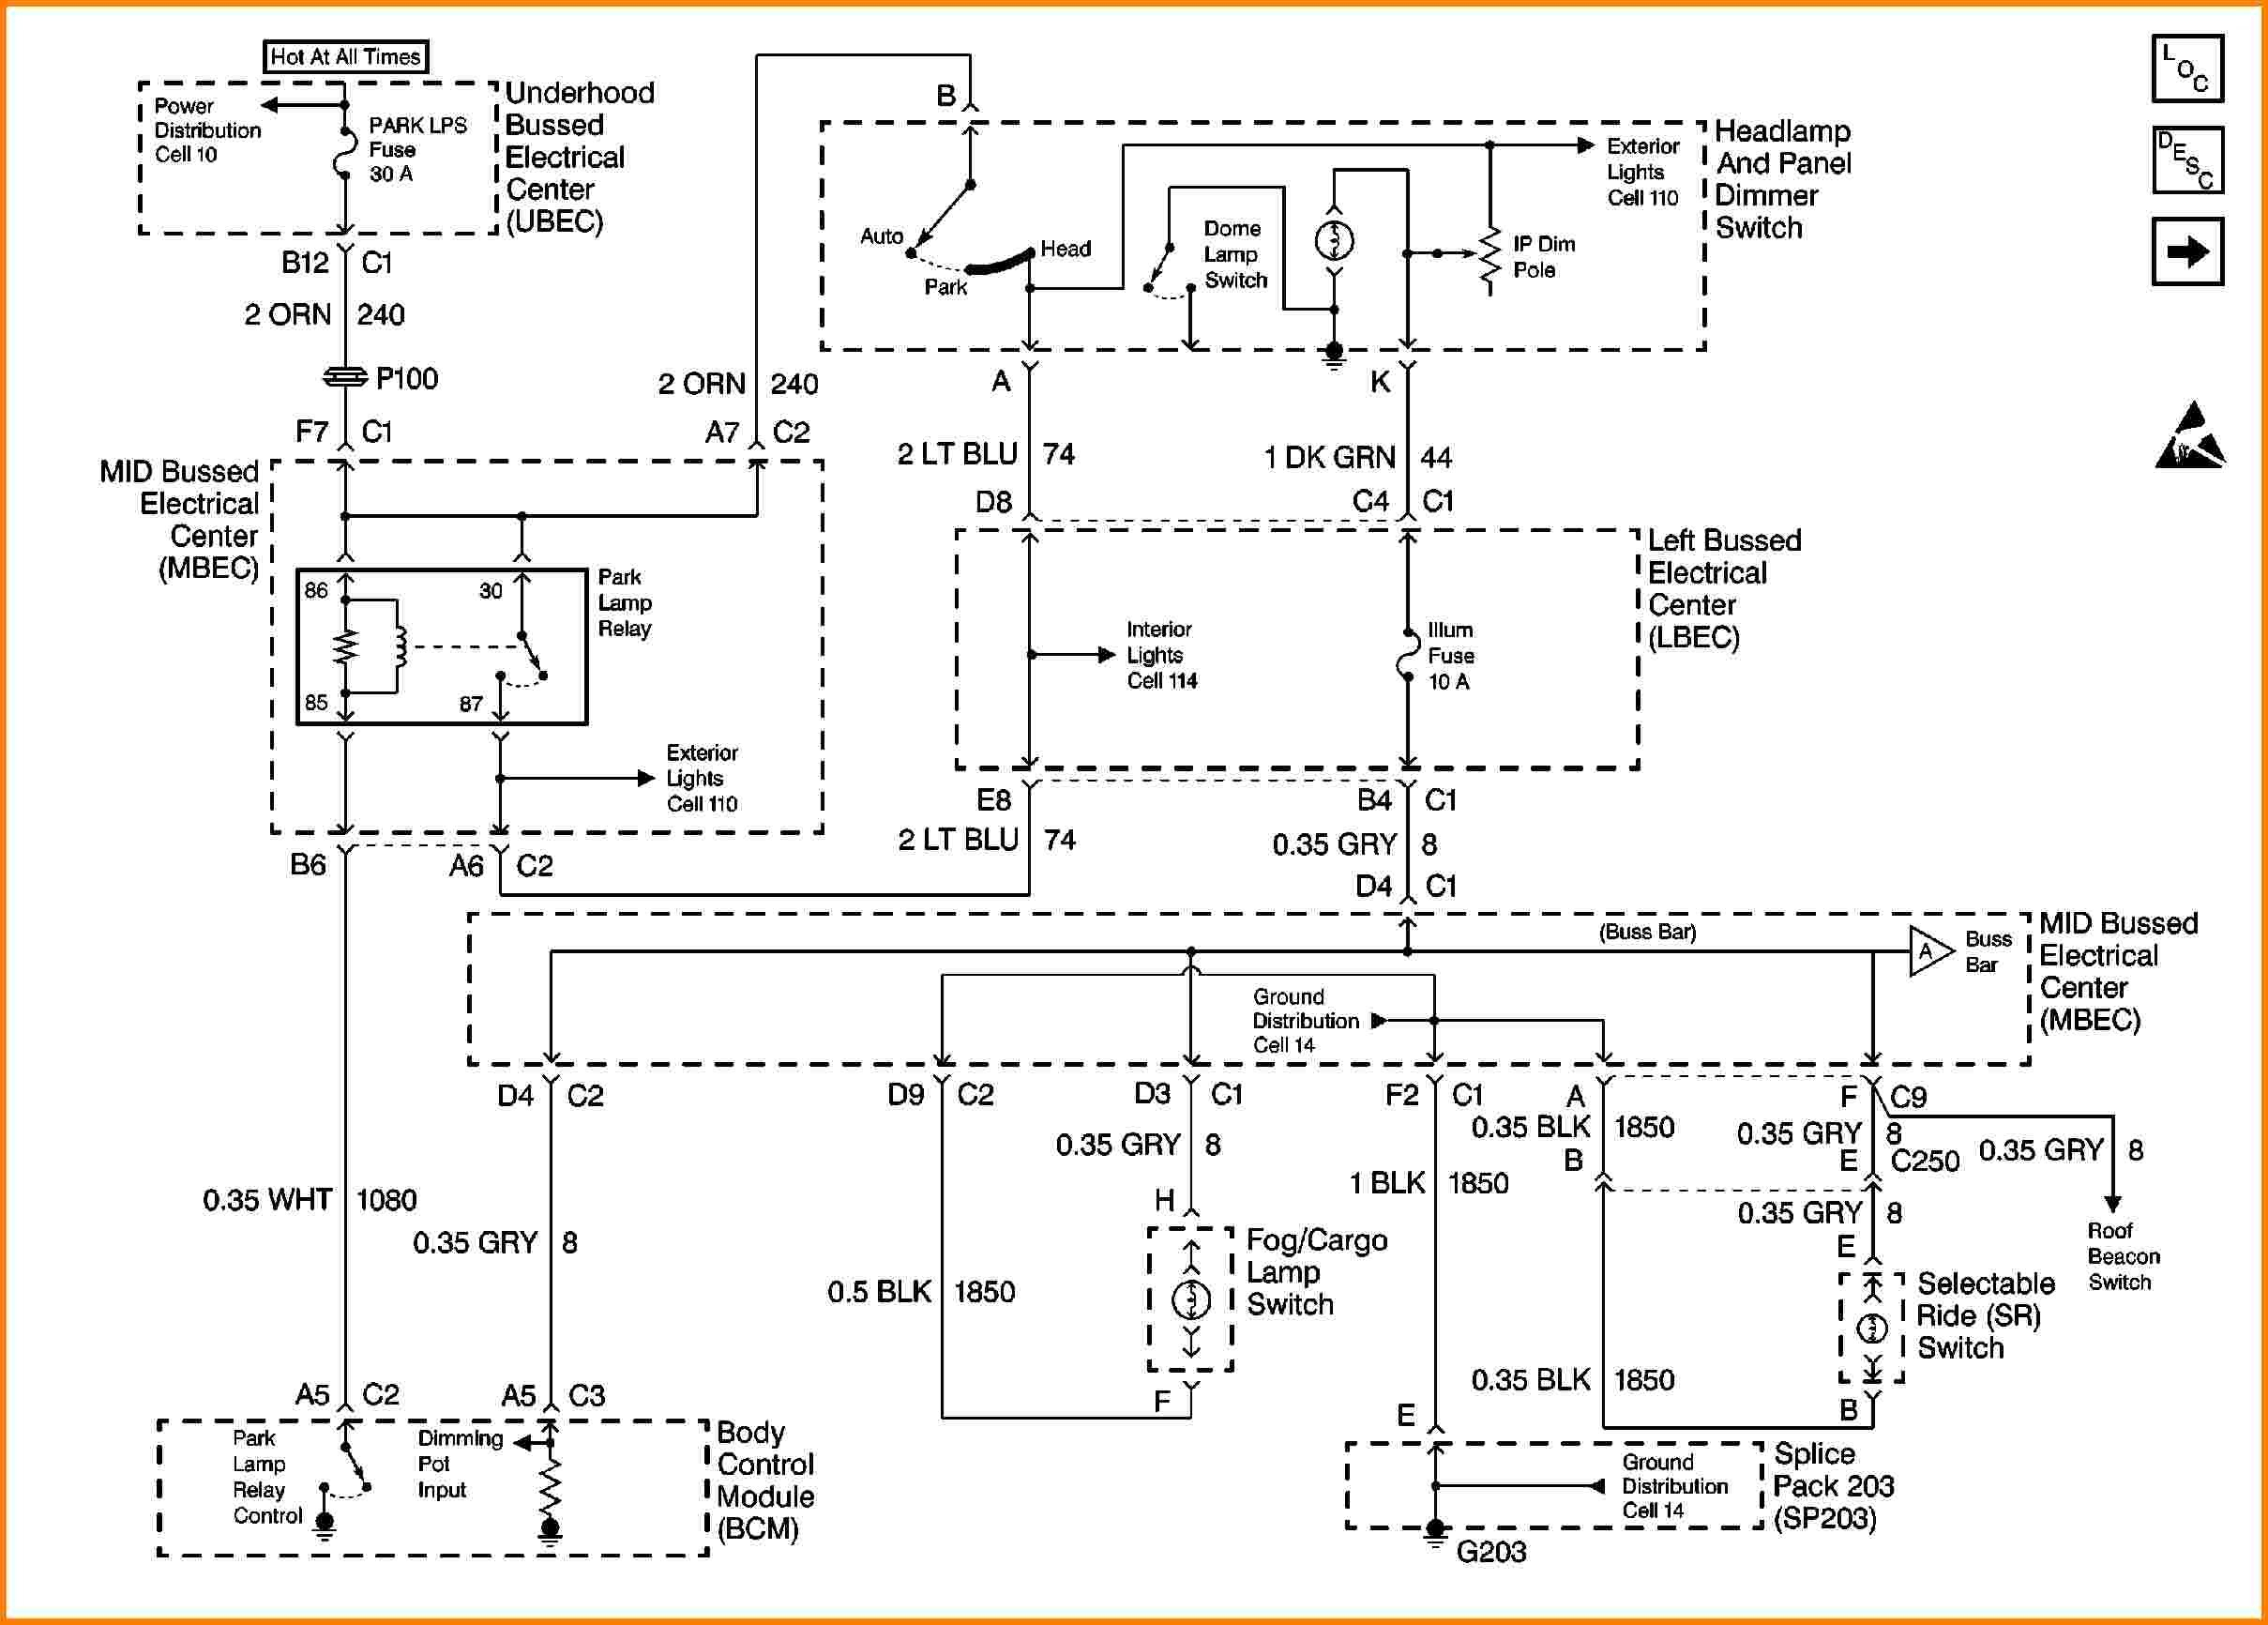 2001 Gmc Truck Electrical Wiring Diagrams - Wiring Diagram long-document -  long-document.crespadorobike.itcrespadorobike.it